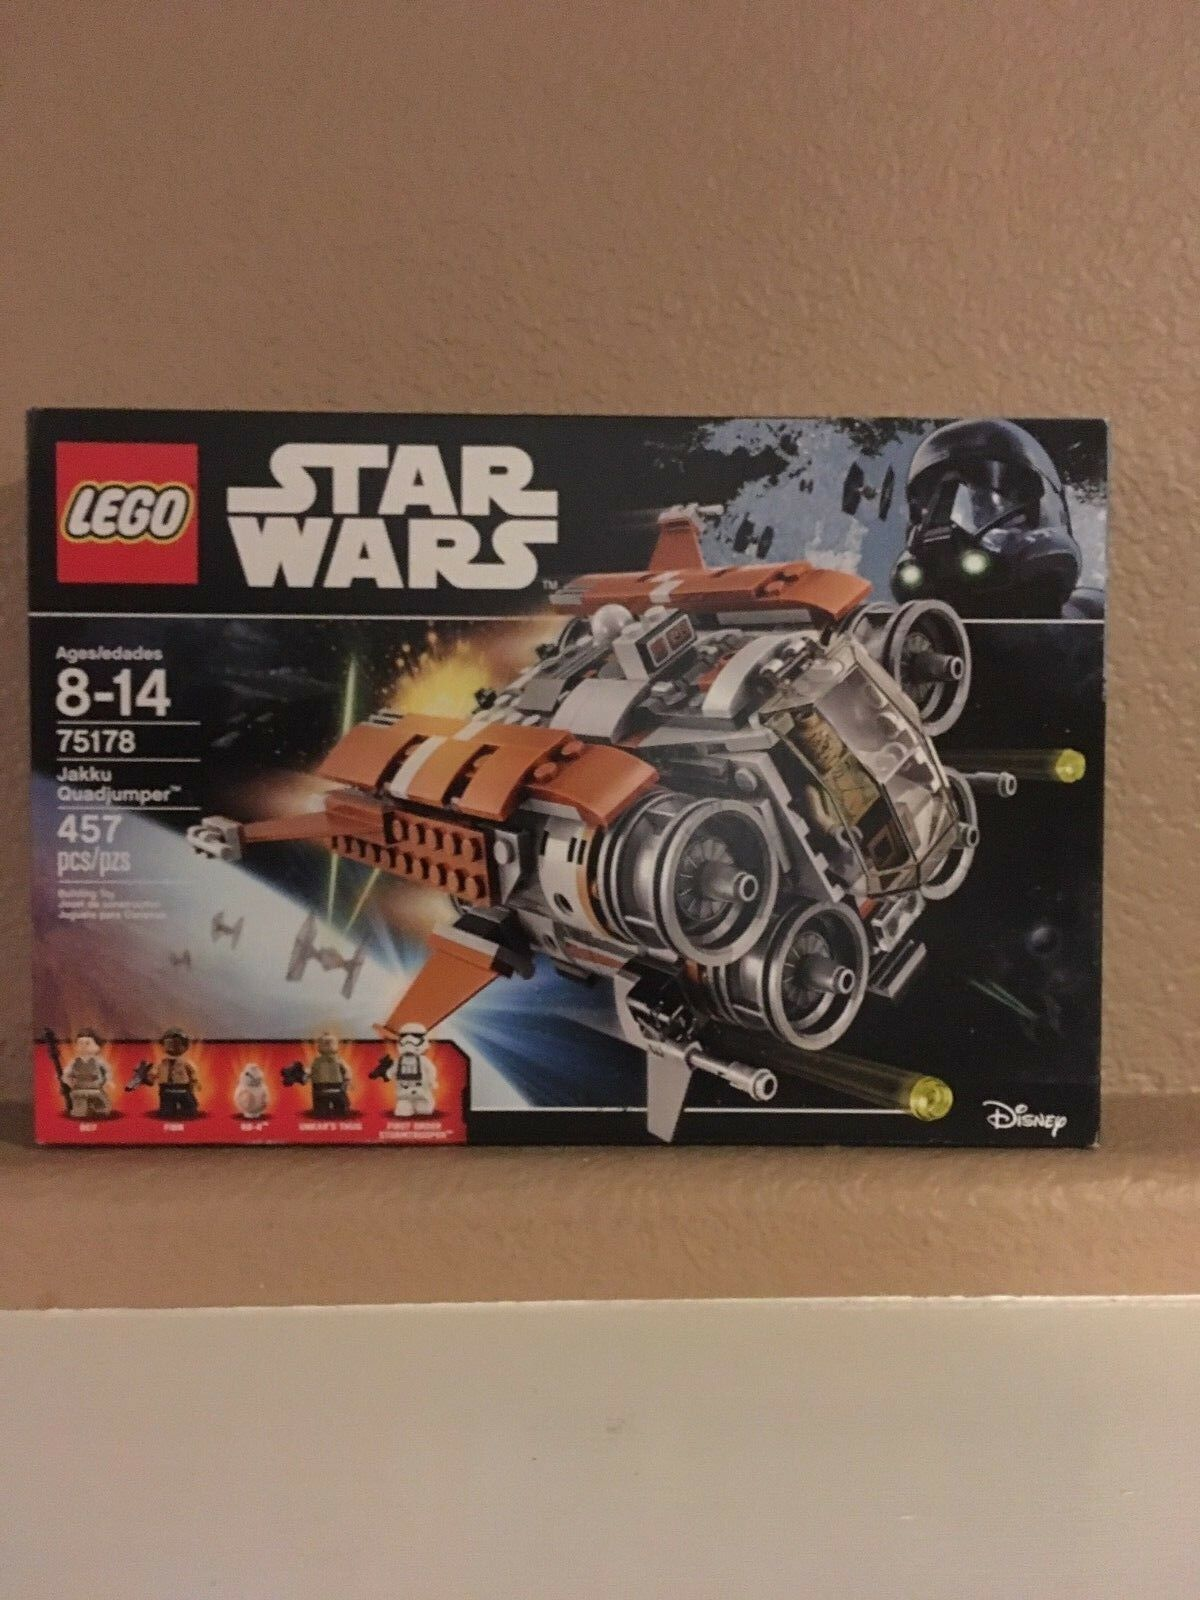 LEGO  New In Sealed Box - Star Wars   75178 - Jakku Quadjumper Age 8+ 457 Pcs